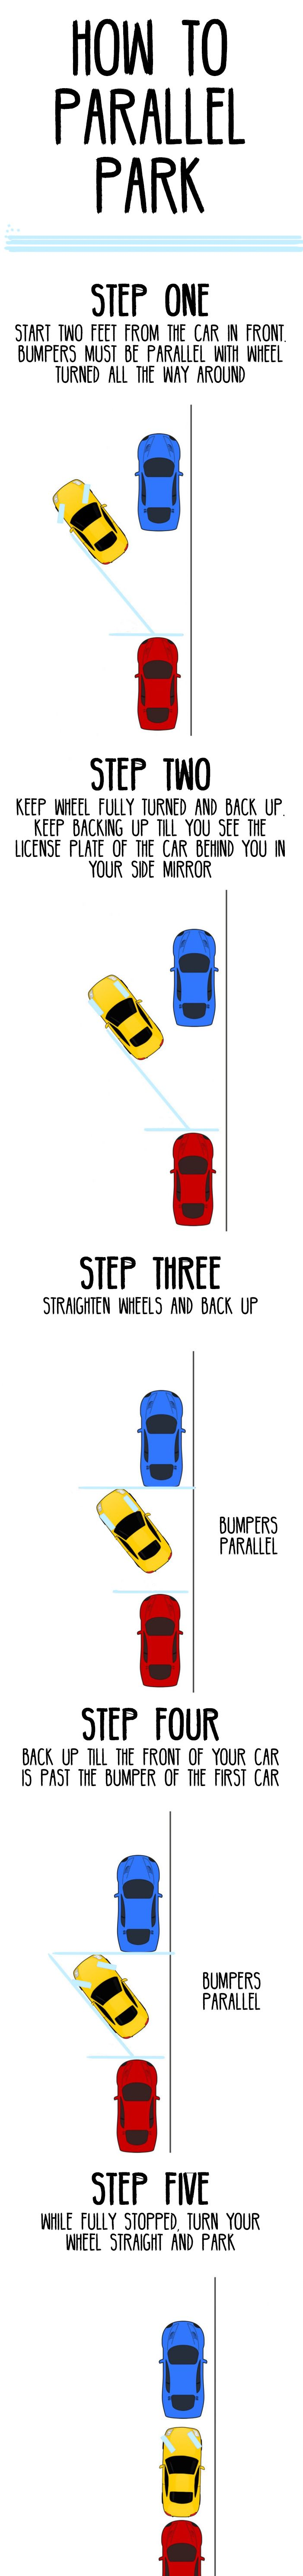 How to parallel park life hack